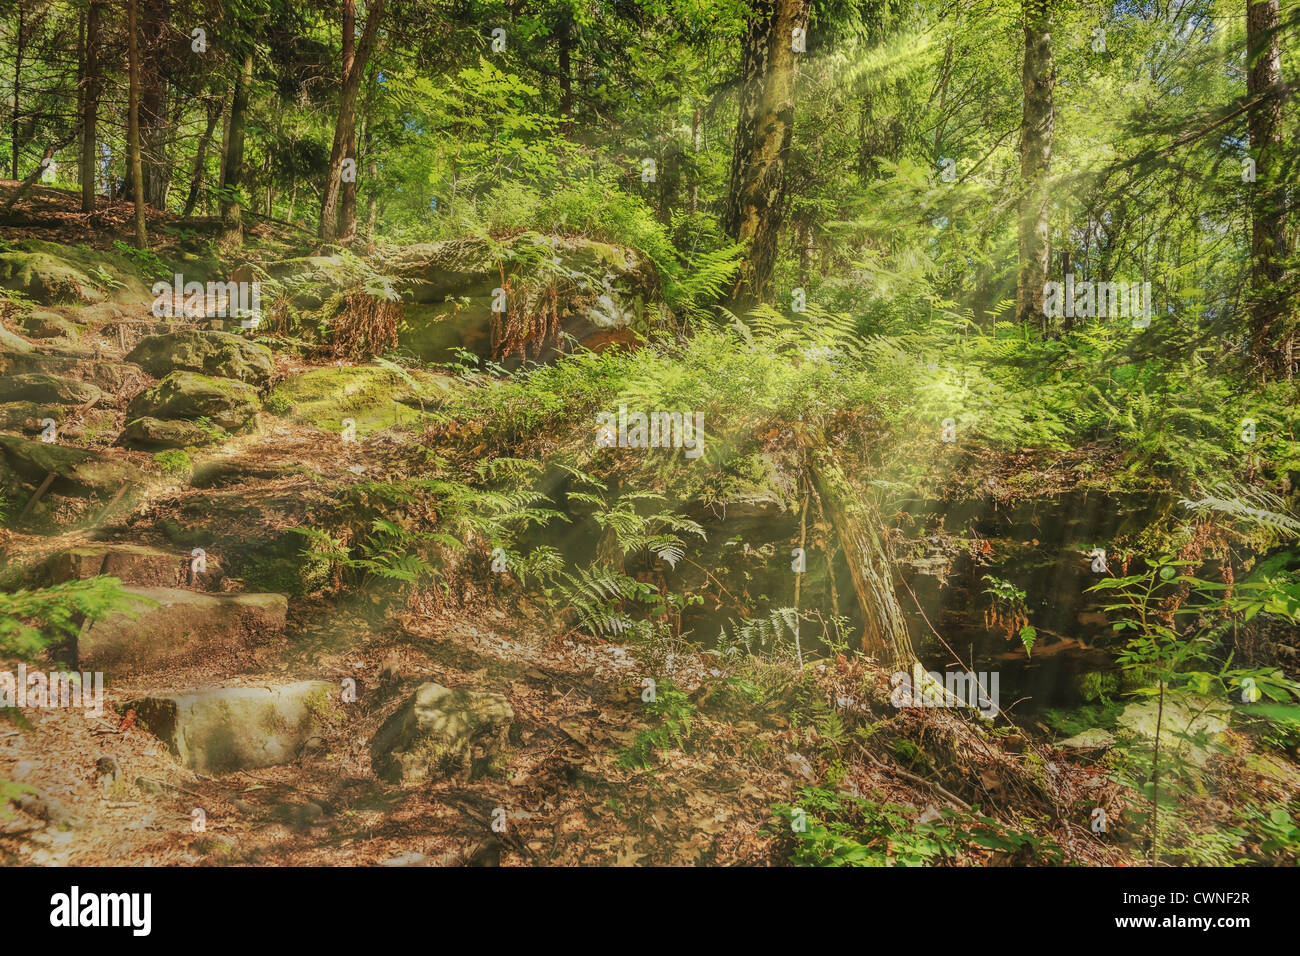 Forest path in summer, the sun shining through the trees, Rosenthal Bielatal National Park Saxon Switzerland, Saxony, - Stock Image